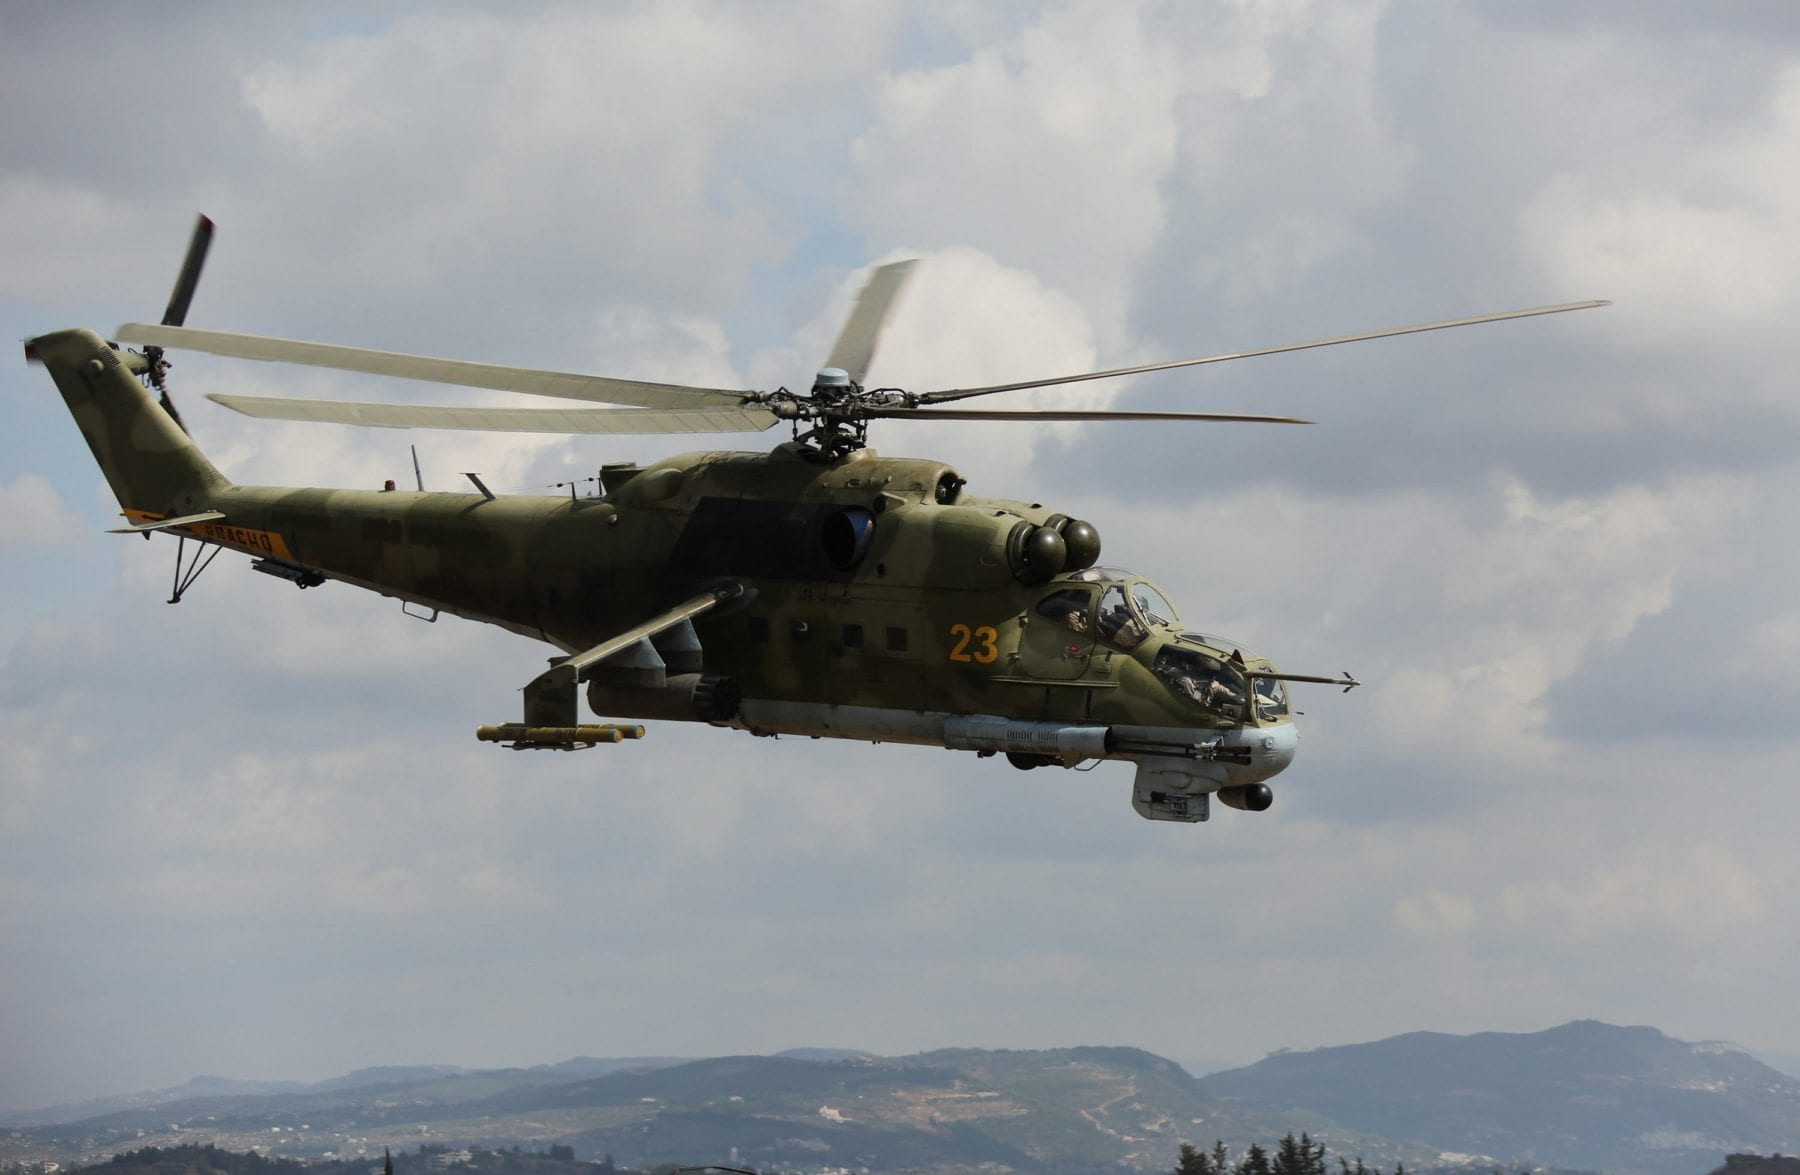 Image Russia's Mil Mi-24 combat helicopter